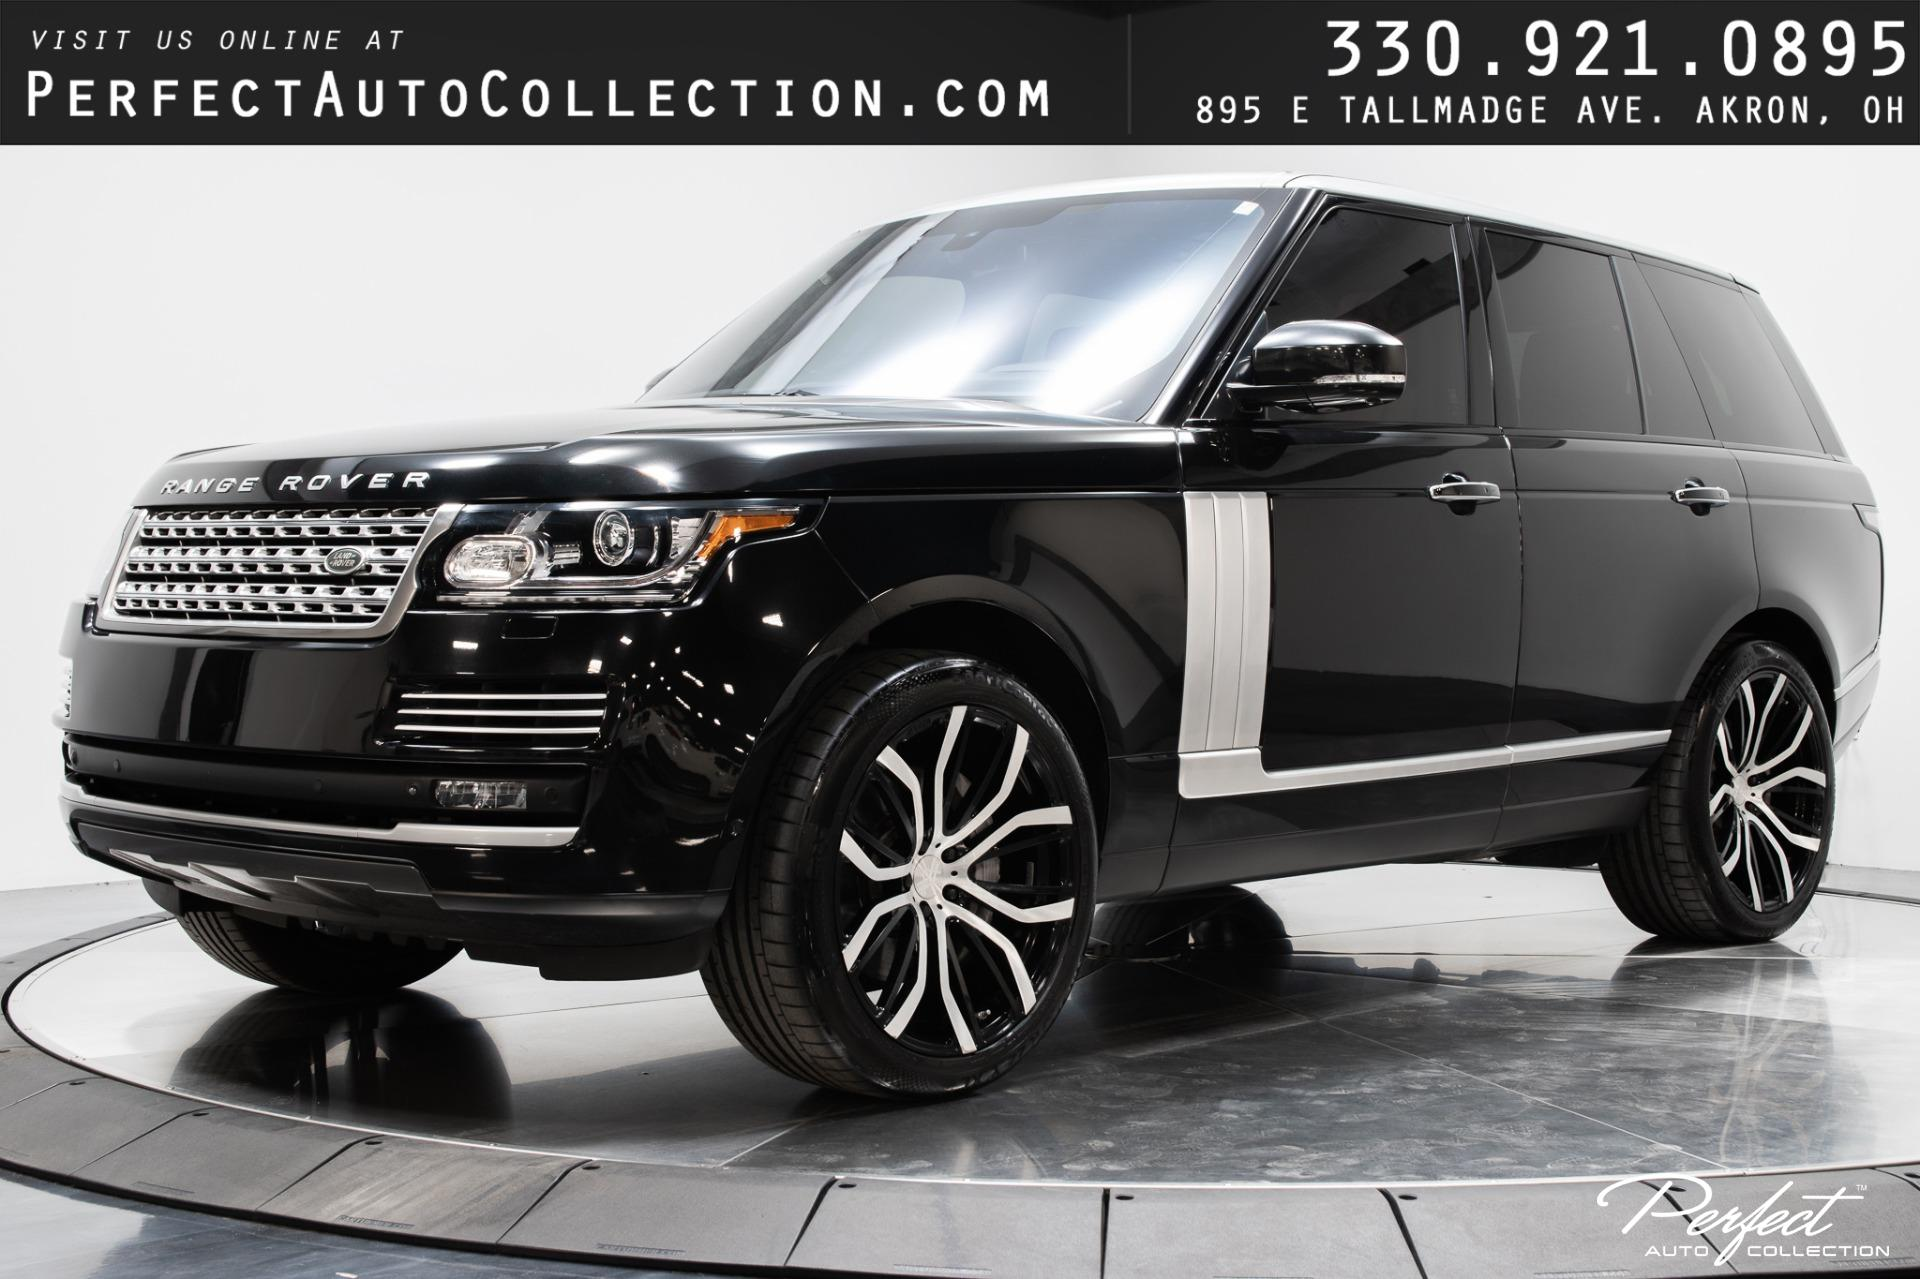 Used 2014 Land Rover Range Rover Autobiography for sale Sold at Perfect Auto Collection in Akron OH 44310 1